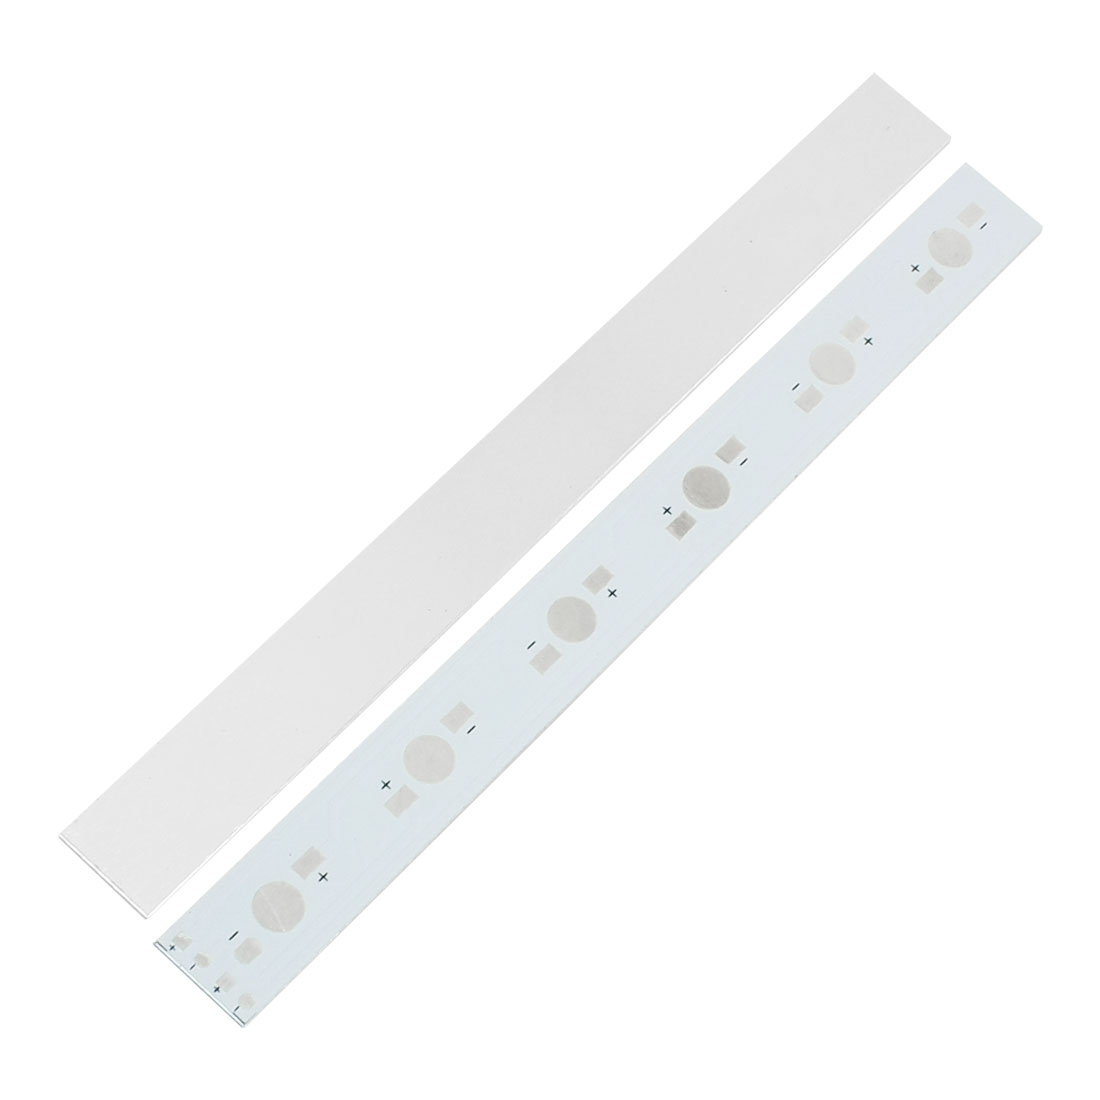 2Pcs 160x15mm DIY Aluminum PCB Circuit Board for 6 x 1W/3W/5W Power LED